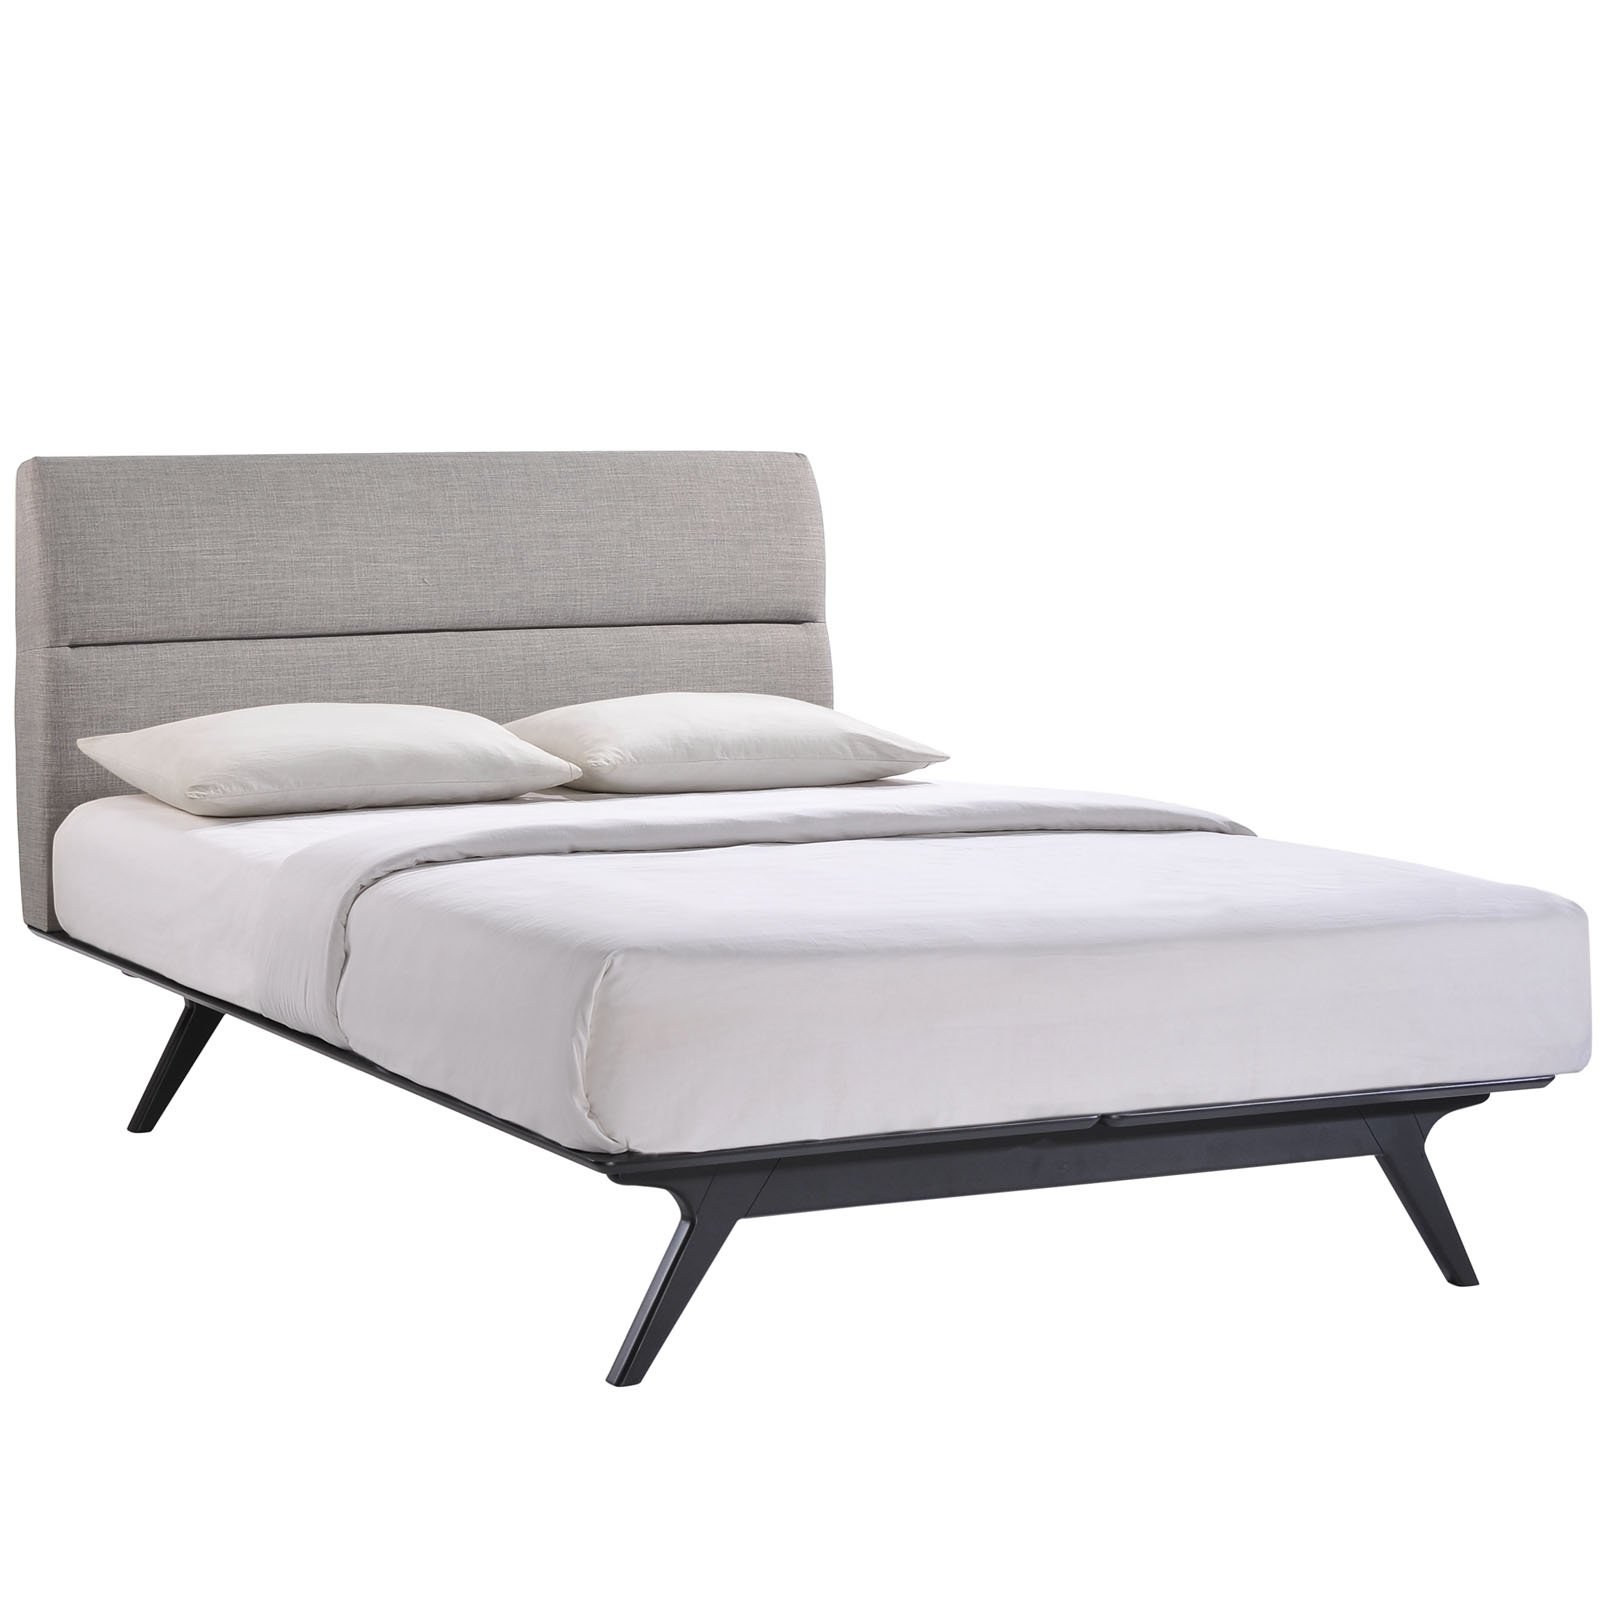 Modway Addison Mid-Century Modern Queen Platform Bed in Black Gray by Modway